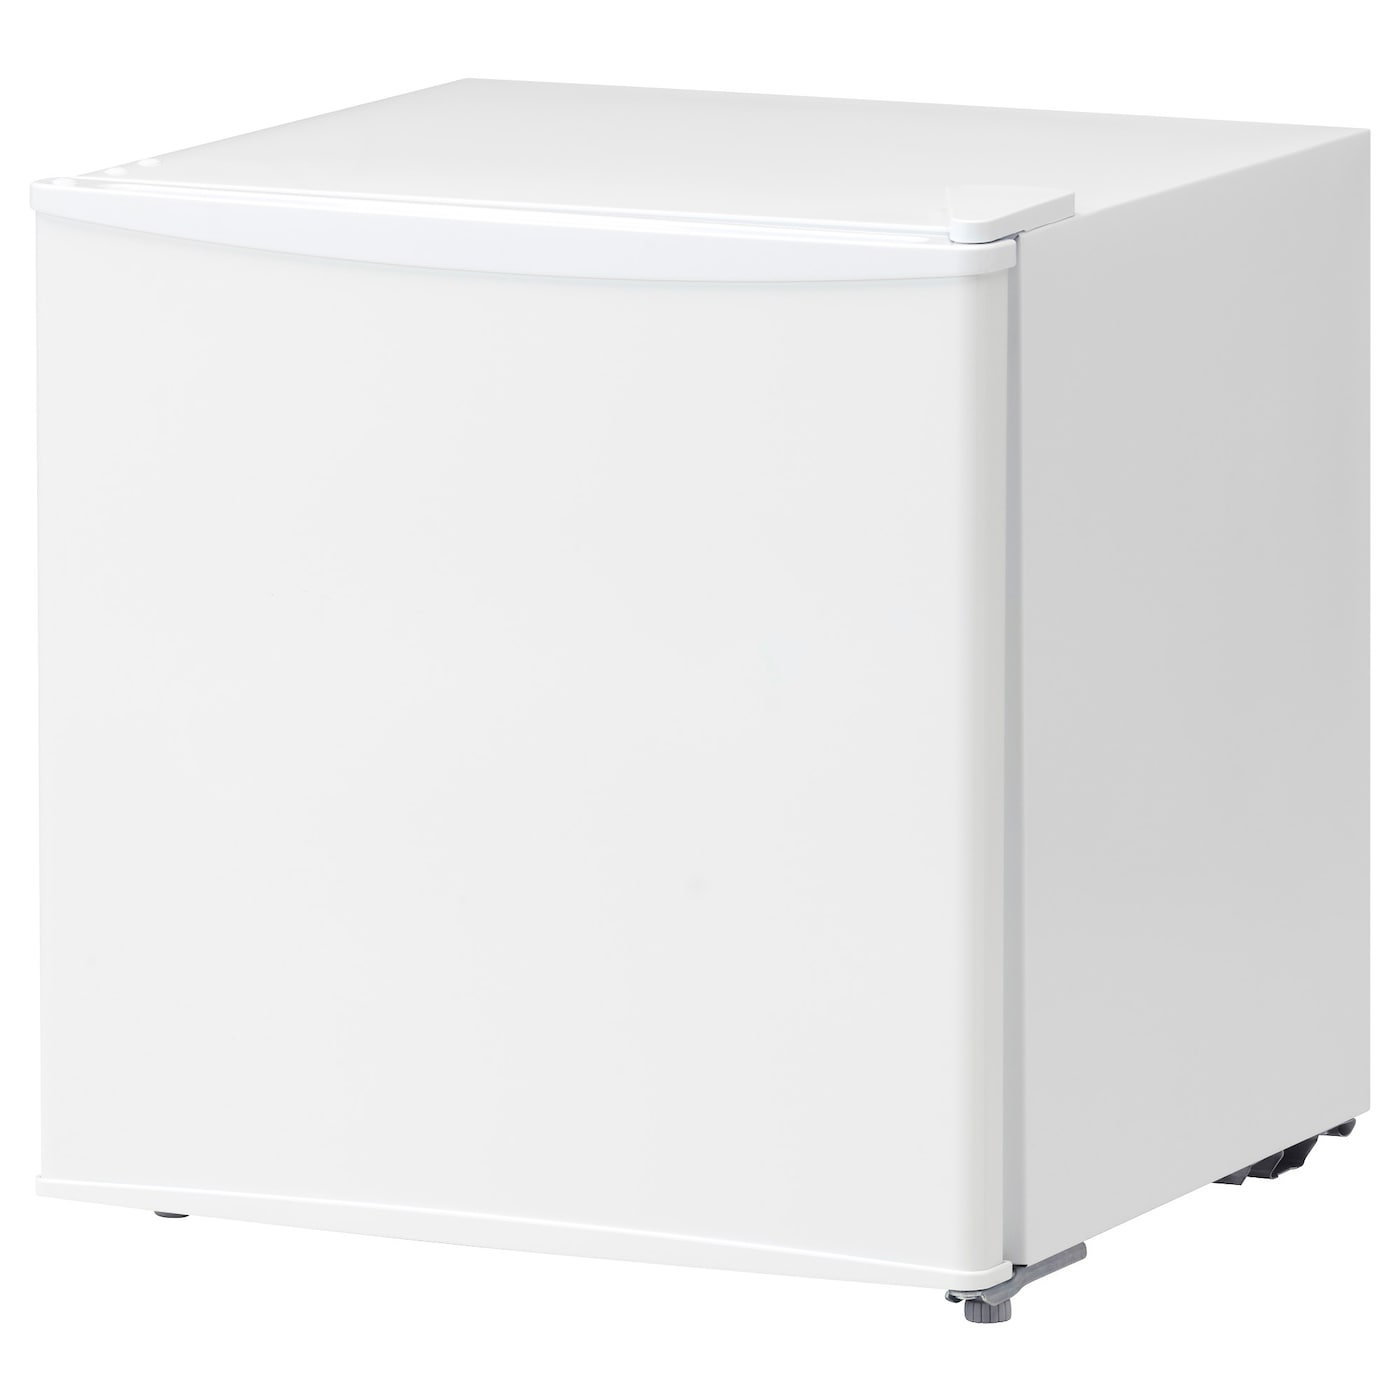 tillreda fridge a white 45 l ikea. Black Bedroom Furniture Sets. Home Design Ideas